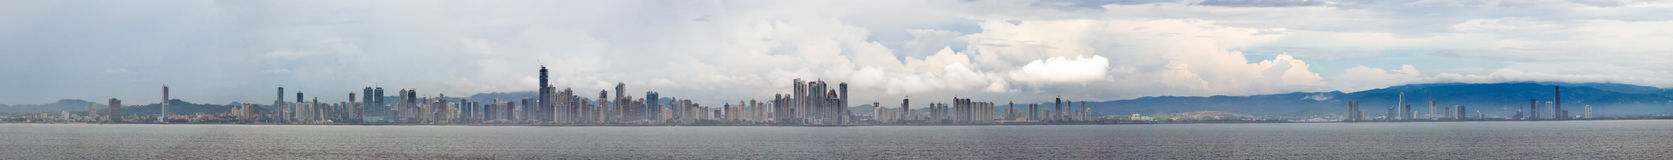 Panama City panoramico Fotografia Stock